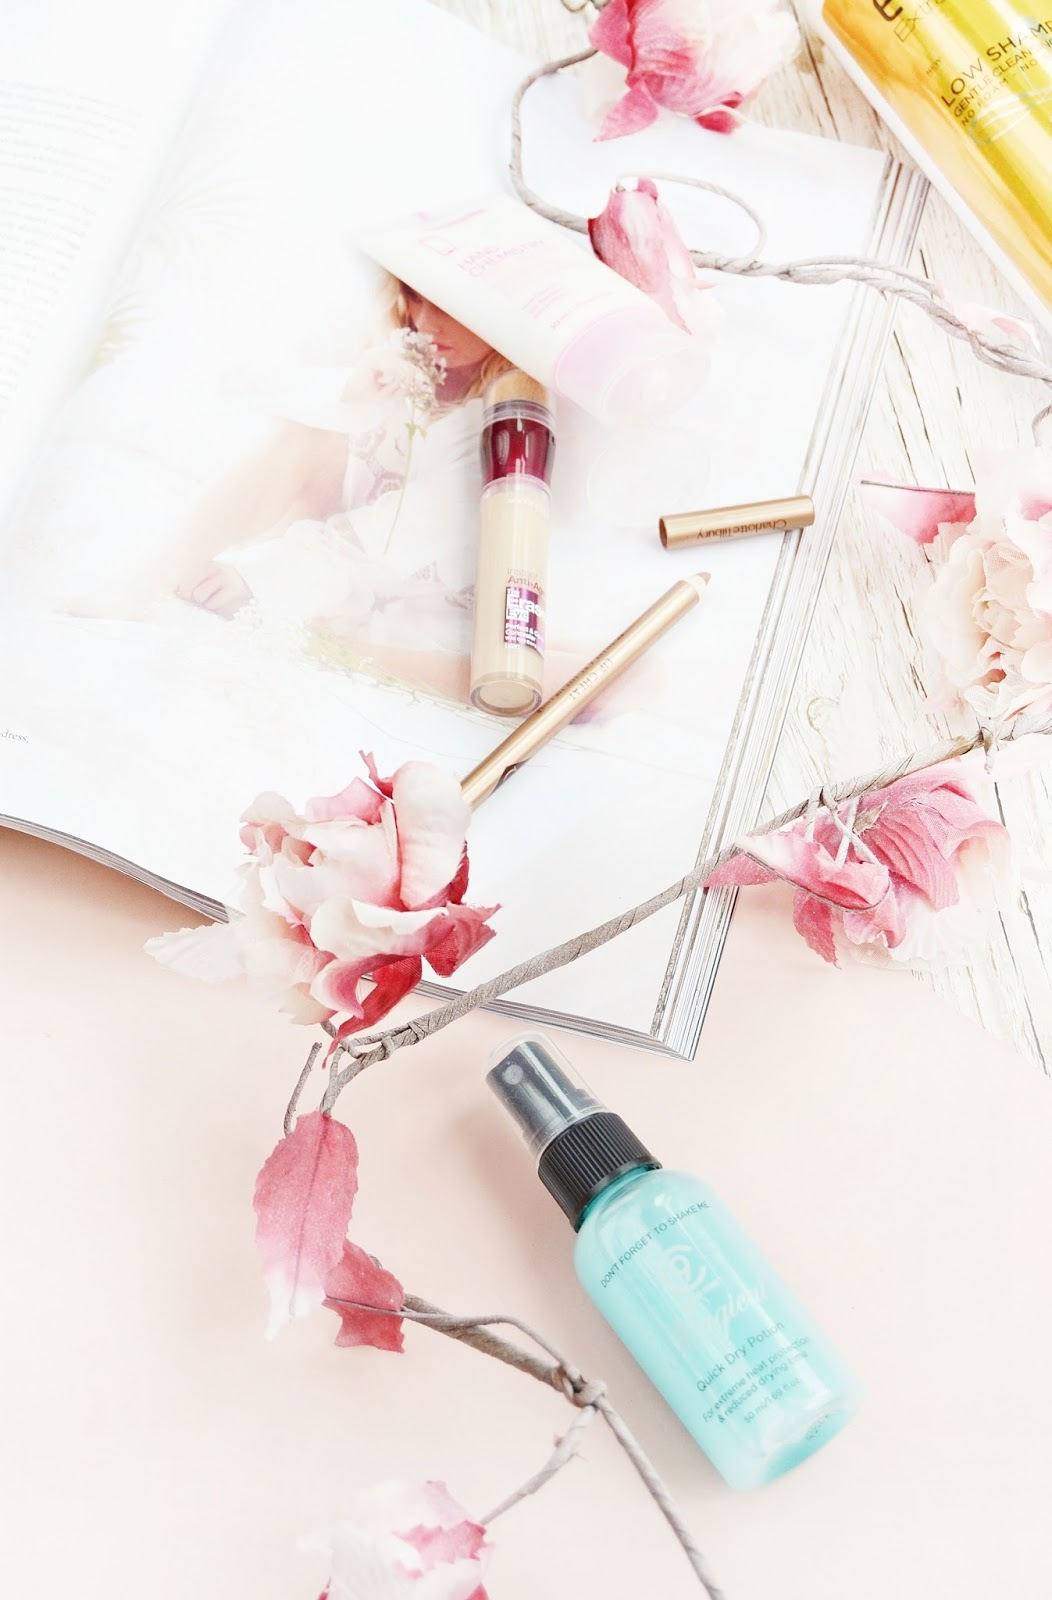 sceptical-beauty-buys-worth-it